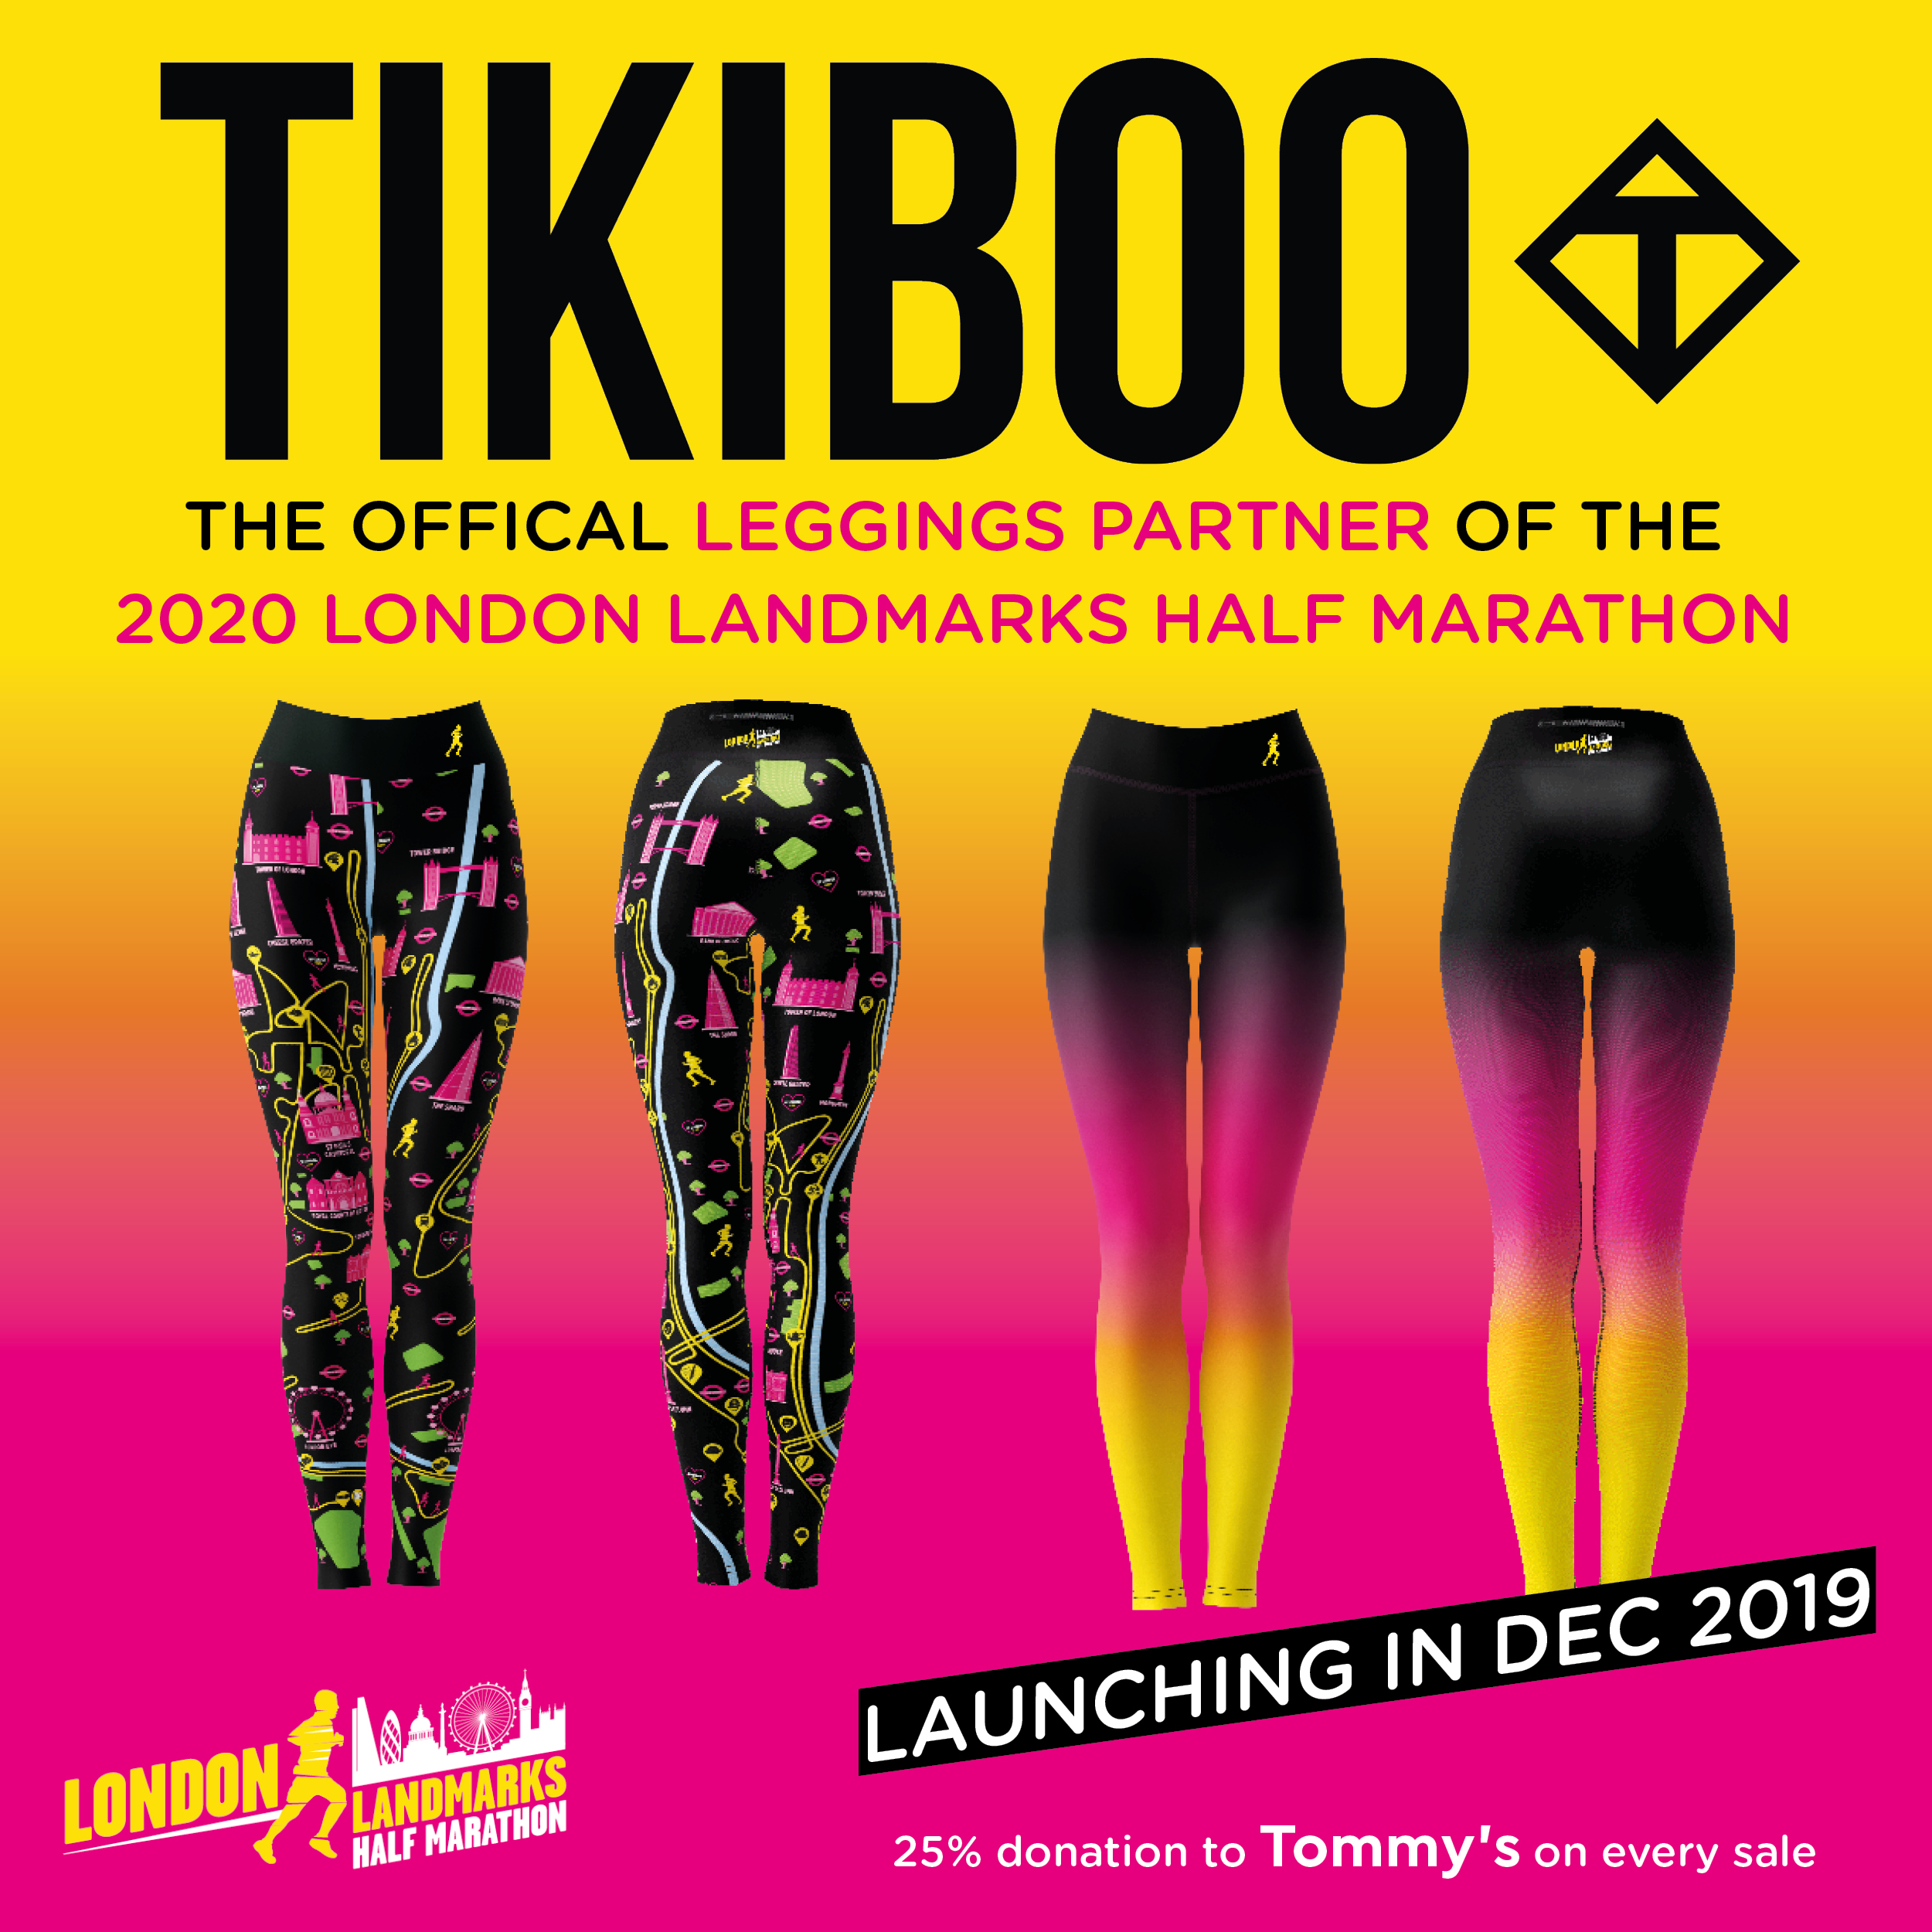 Tikiboo Leggings for London Landmarks Half Marathon December 2019